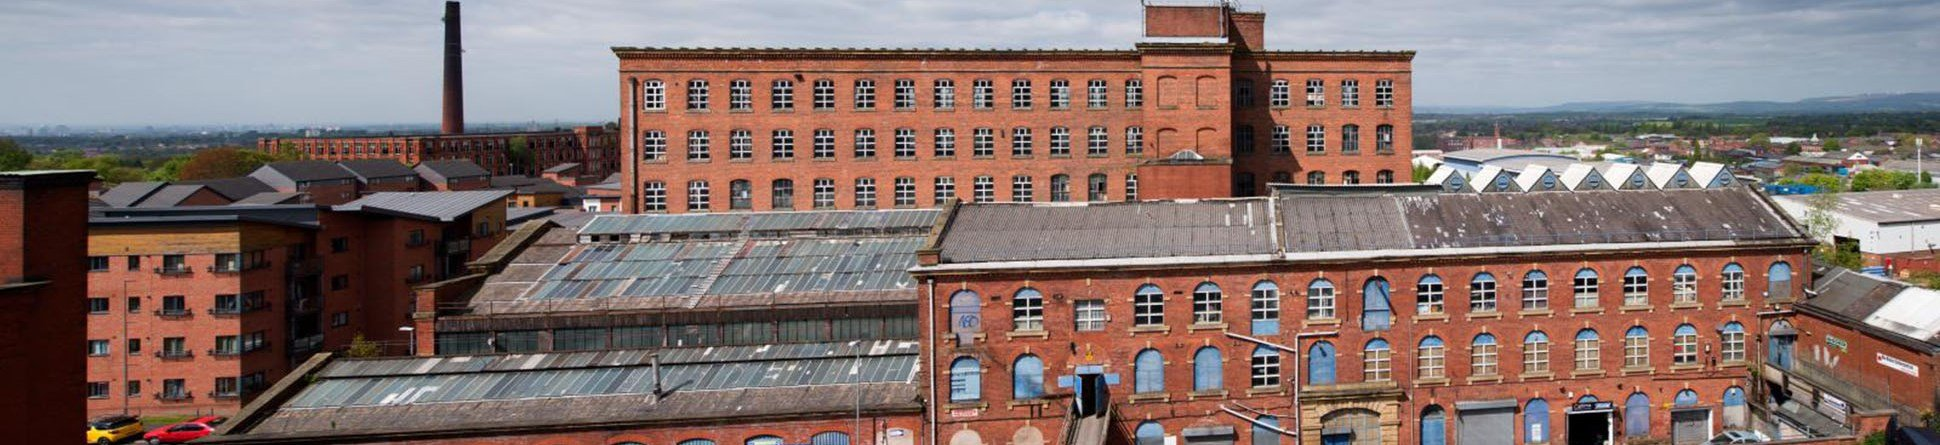 Mill complex at Hartford Works, Oldham, Greater Manchester